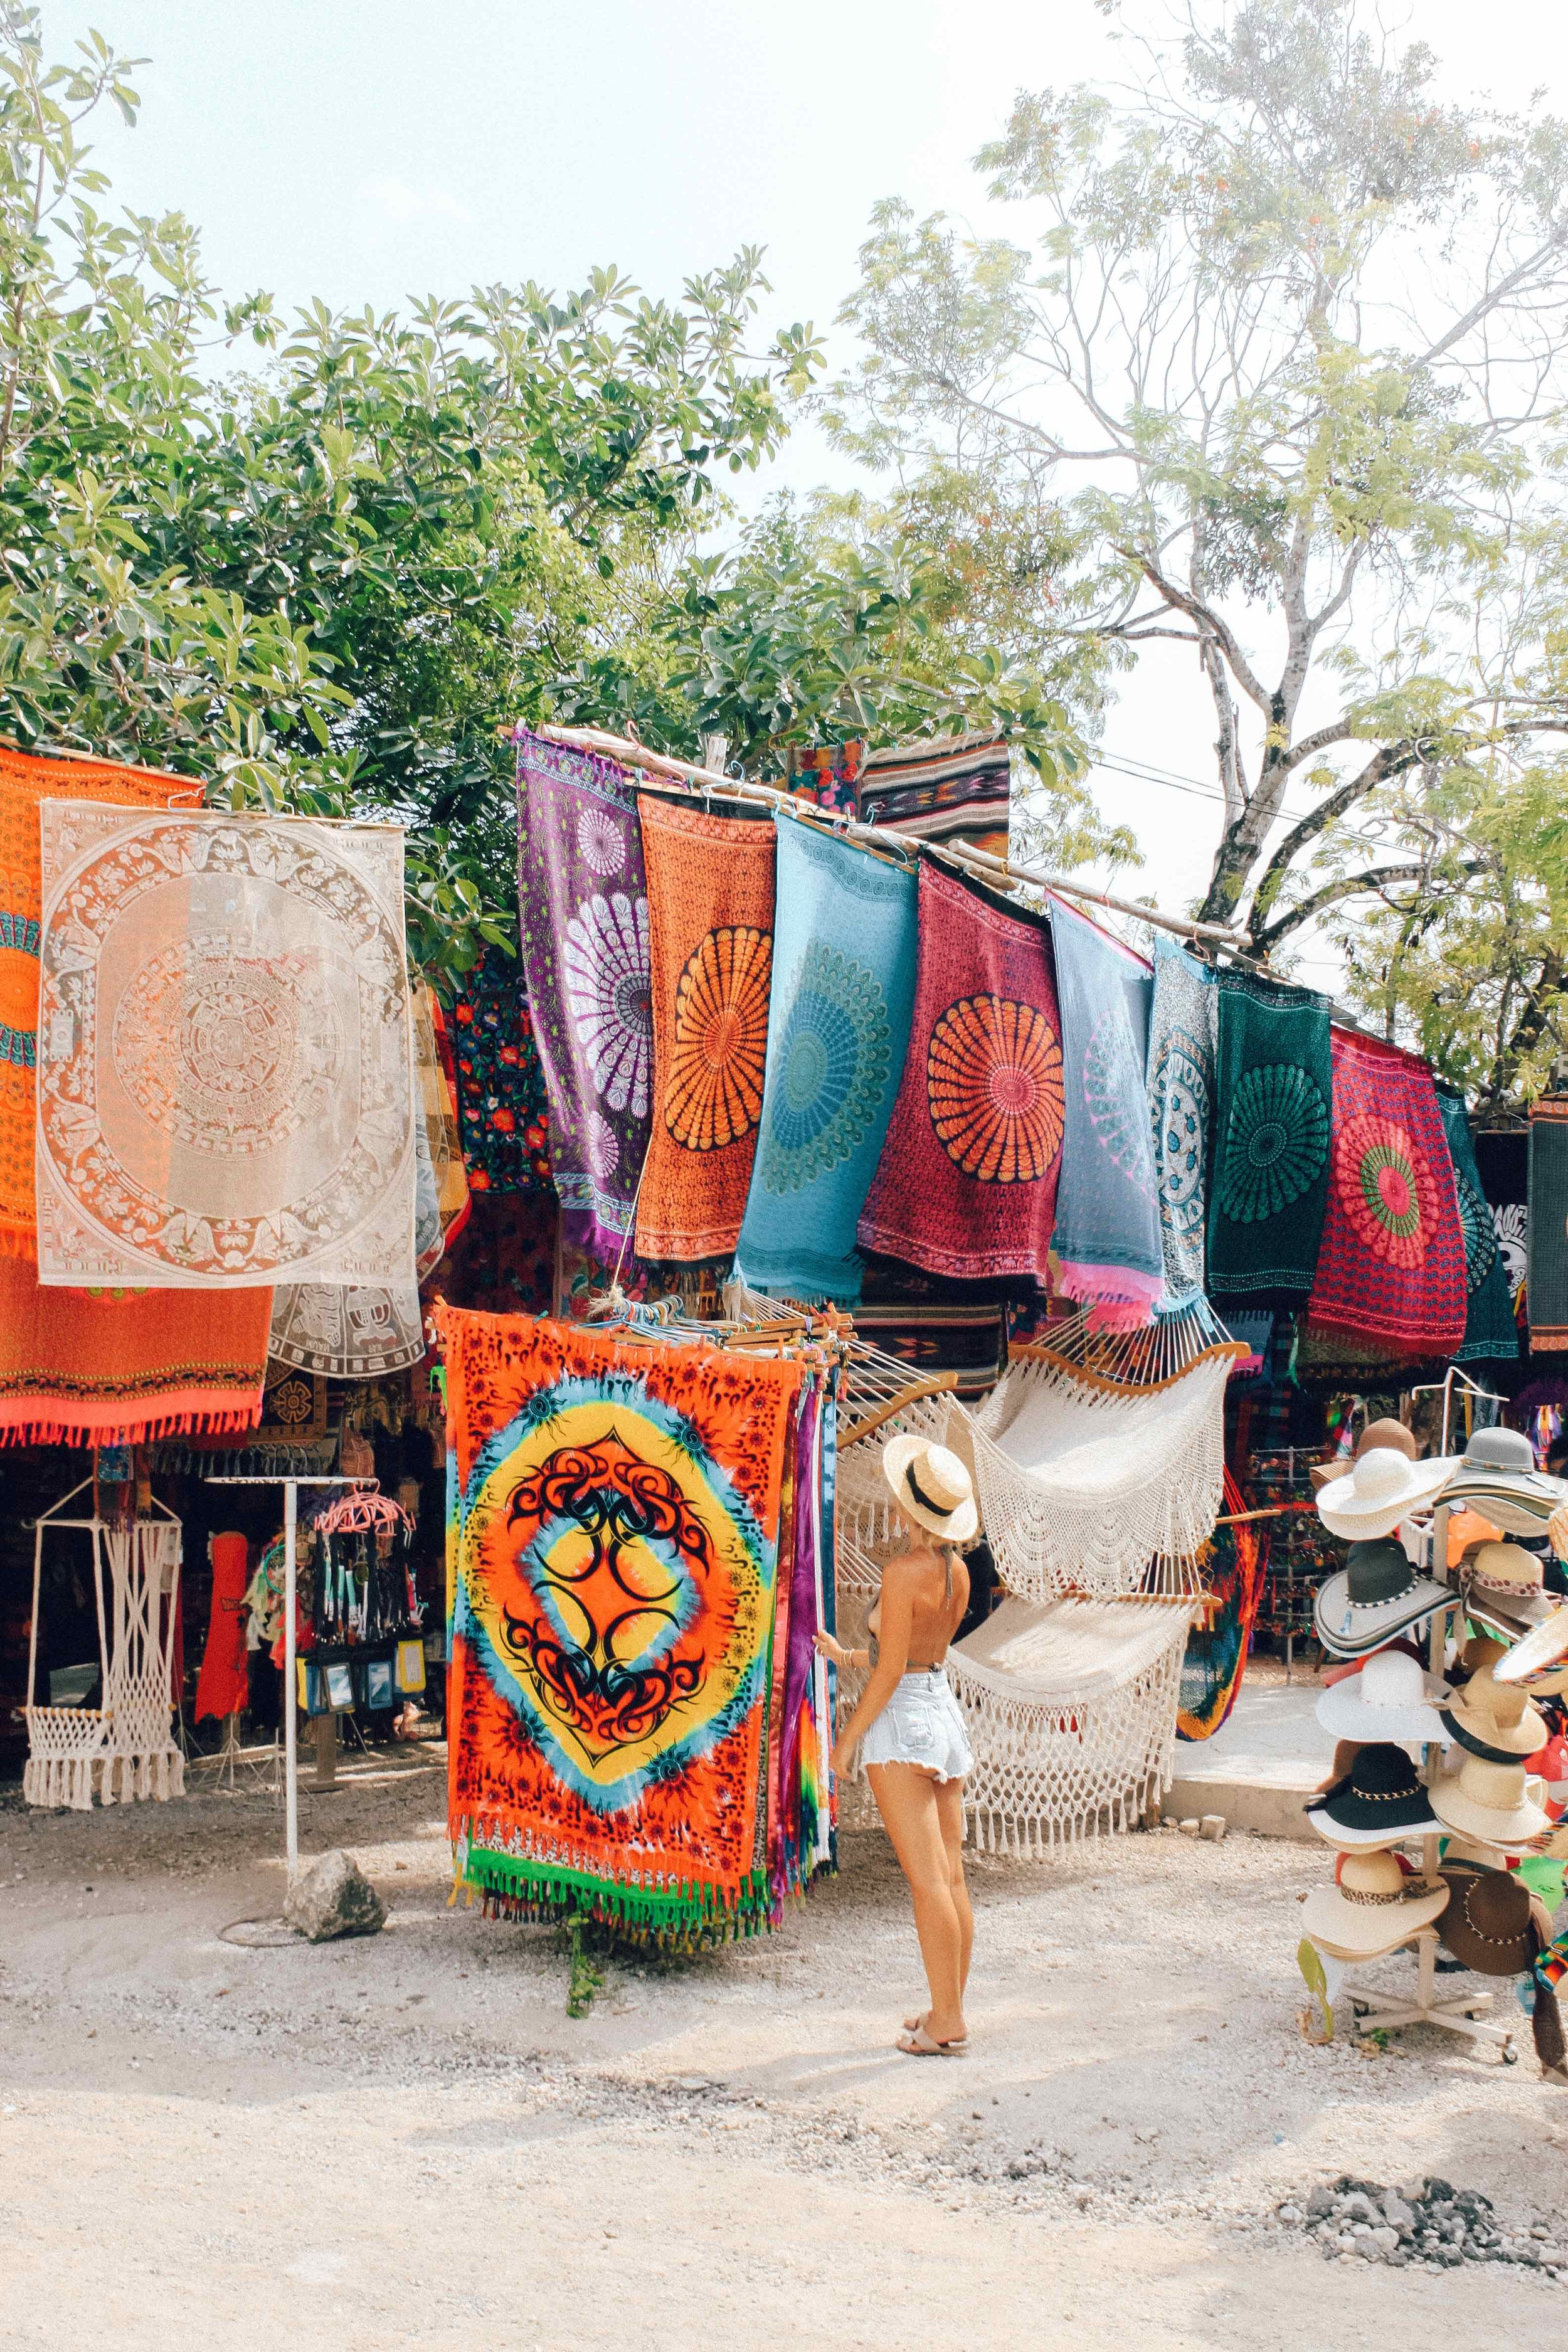 Markets at the entrance of the Tulum Ruins